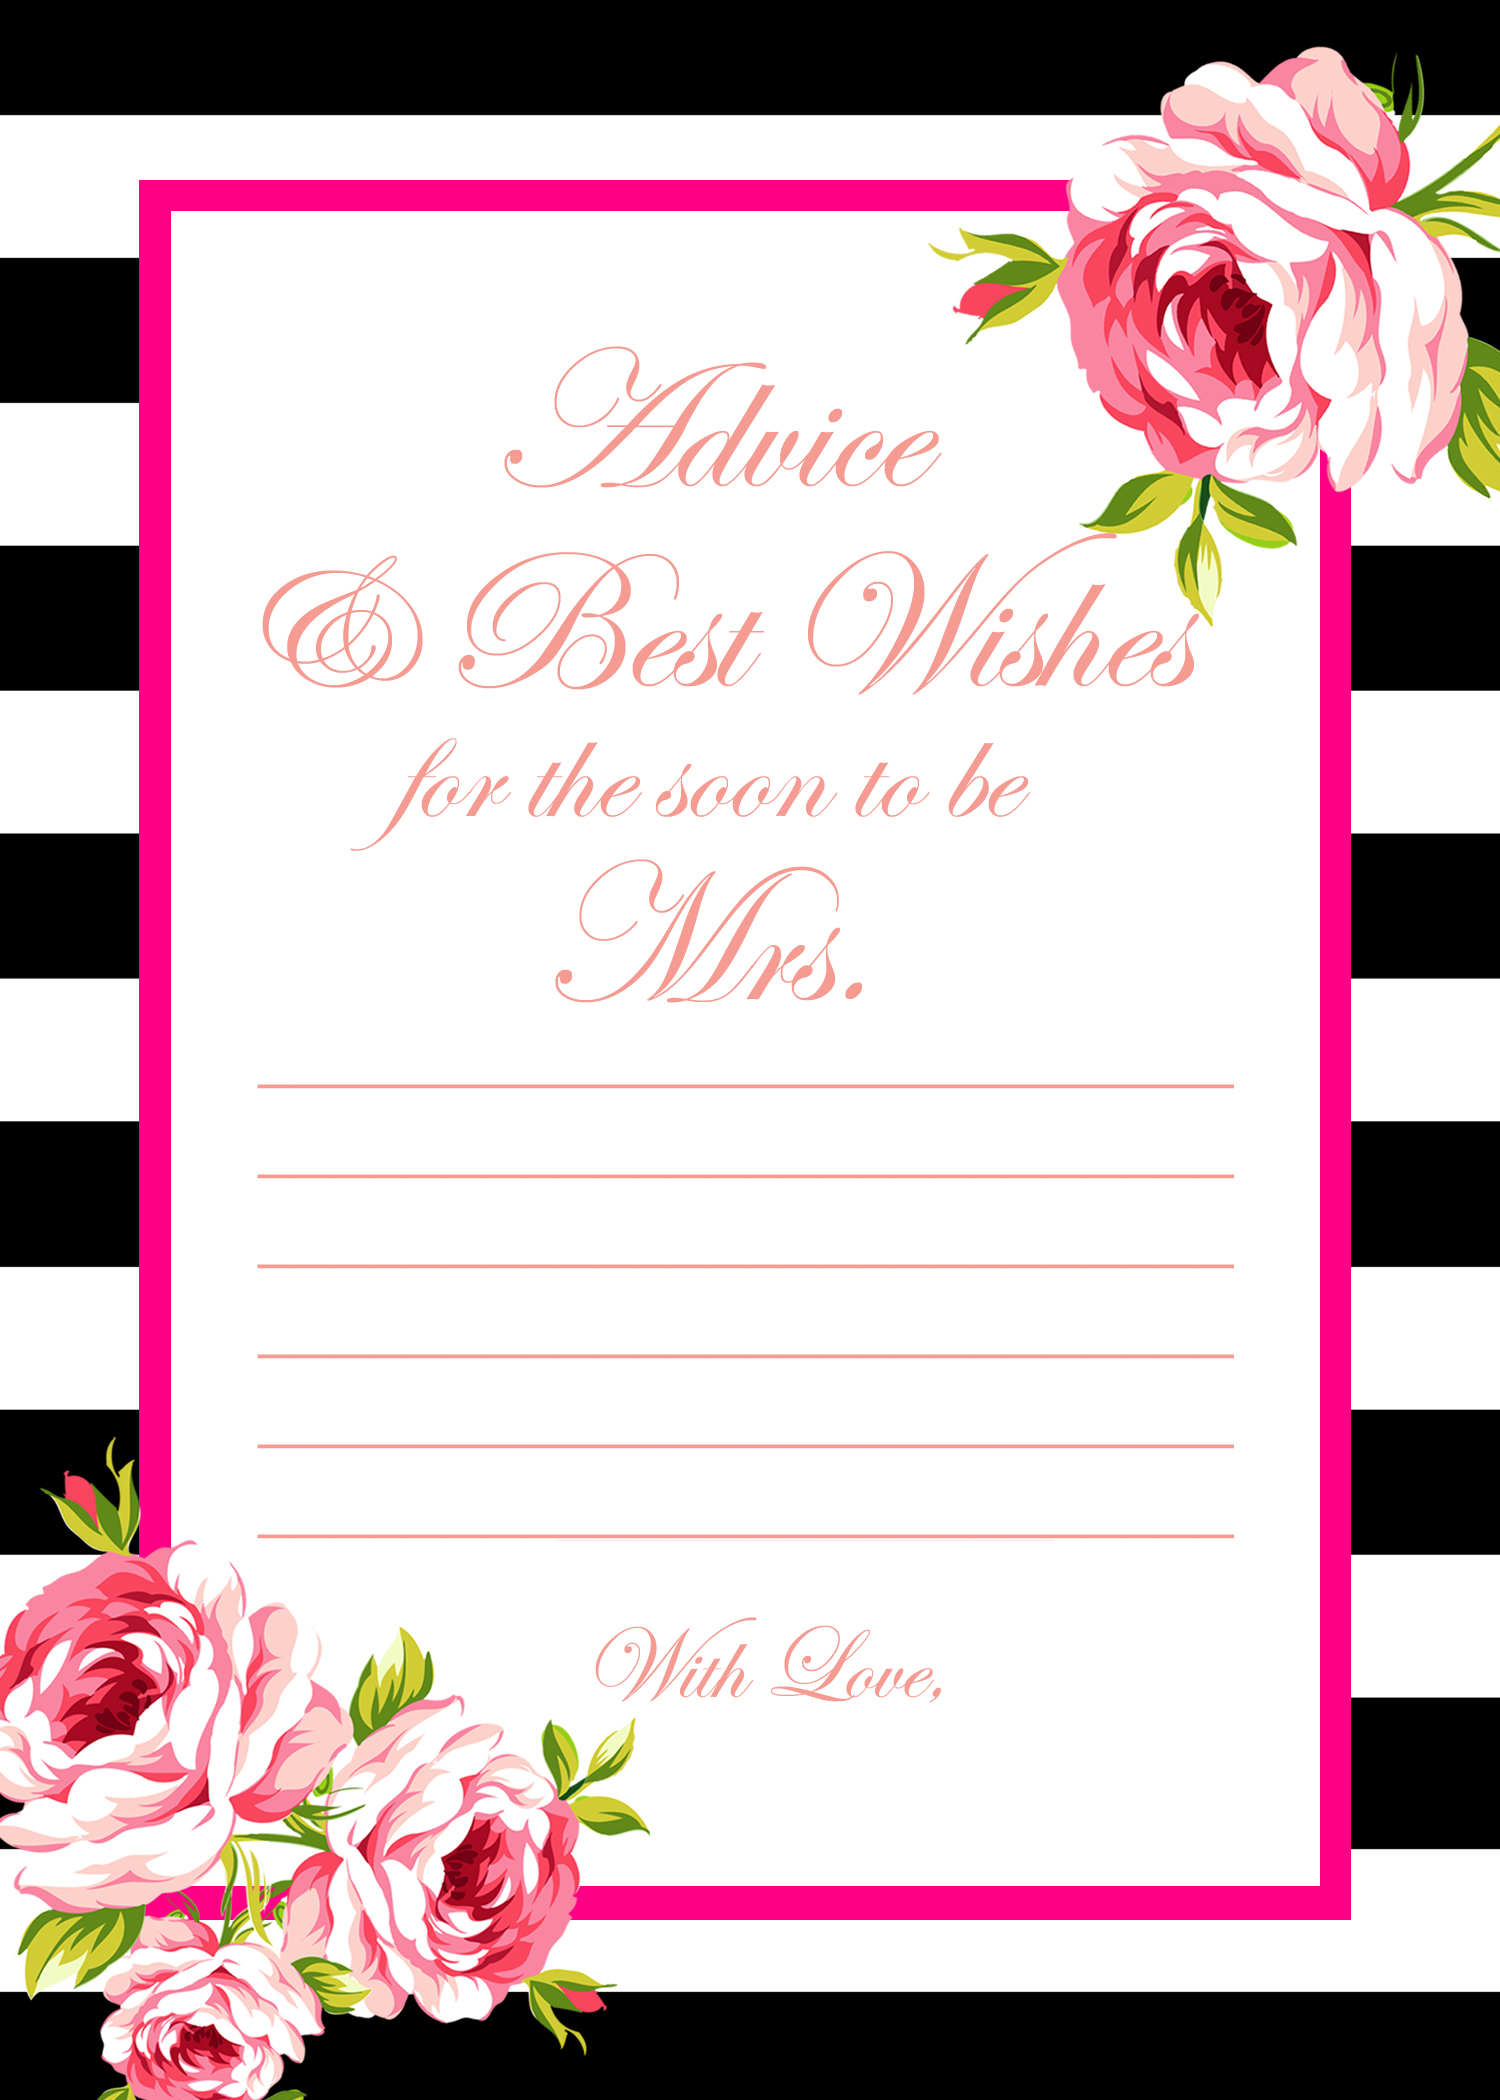 download jpeg download pdf free how well do you know the bride game printable